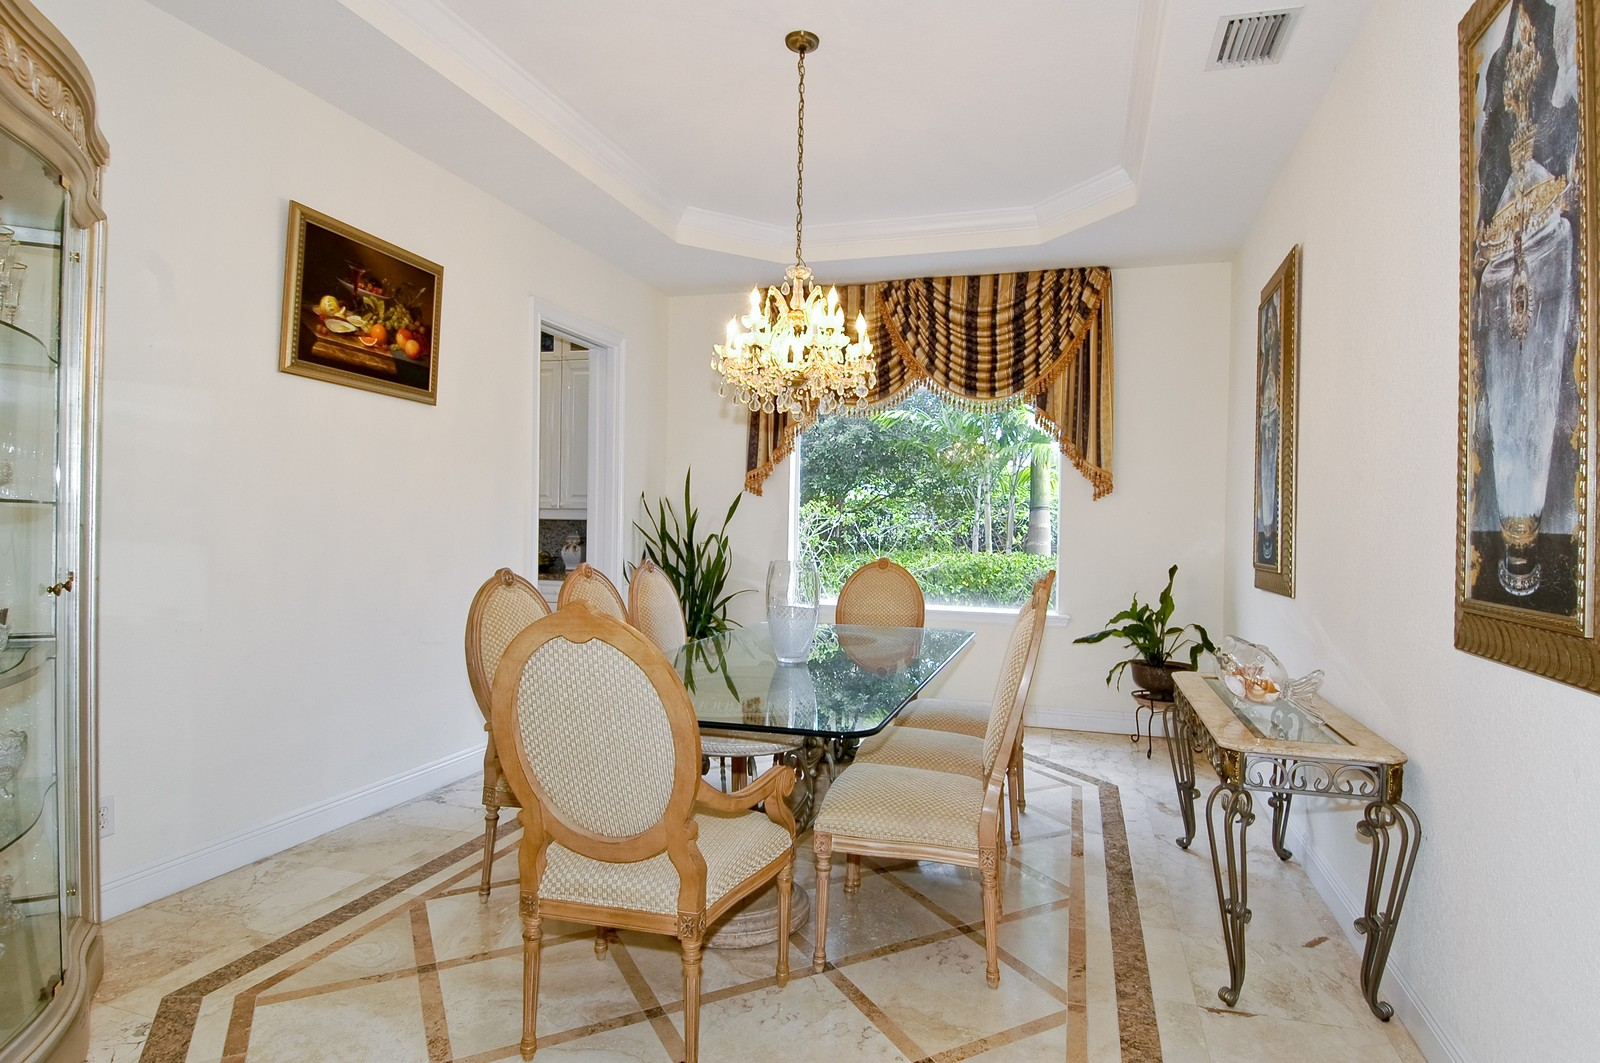 Real Estate Photography - 1081 Habor, Hollywood, FL, 33019 - Dining Room